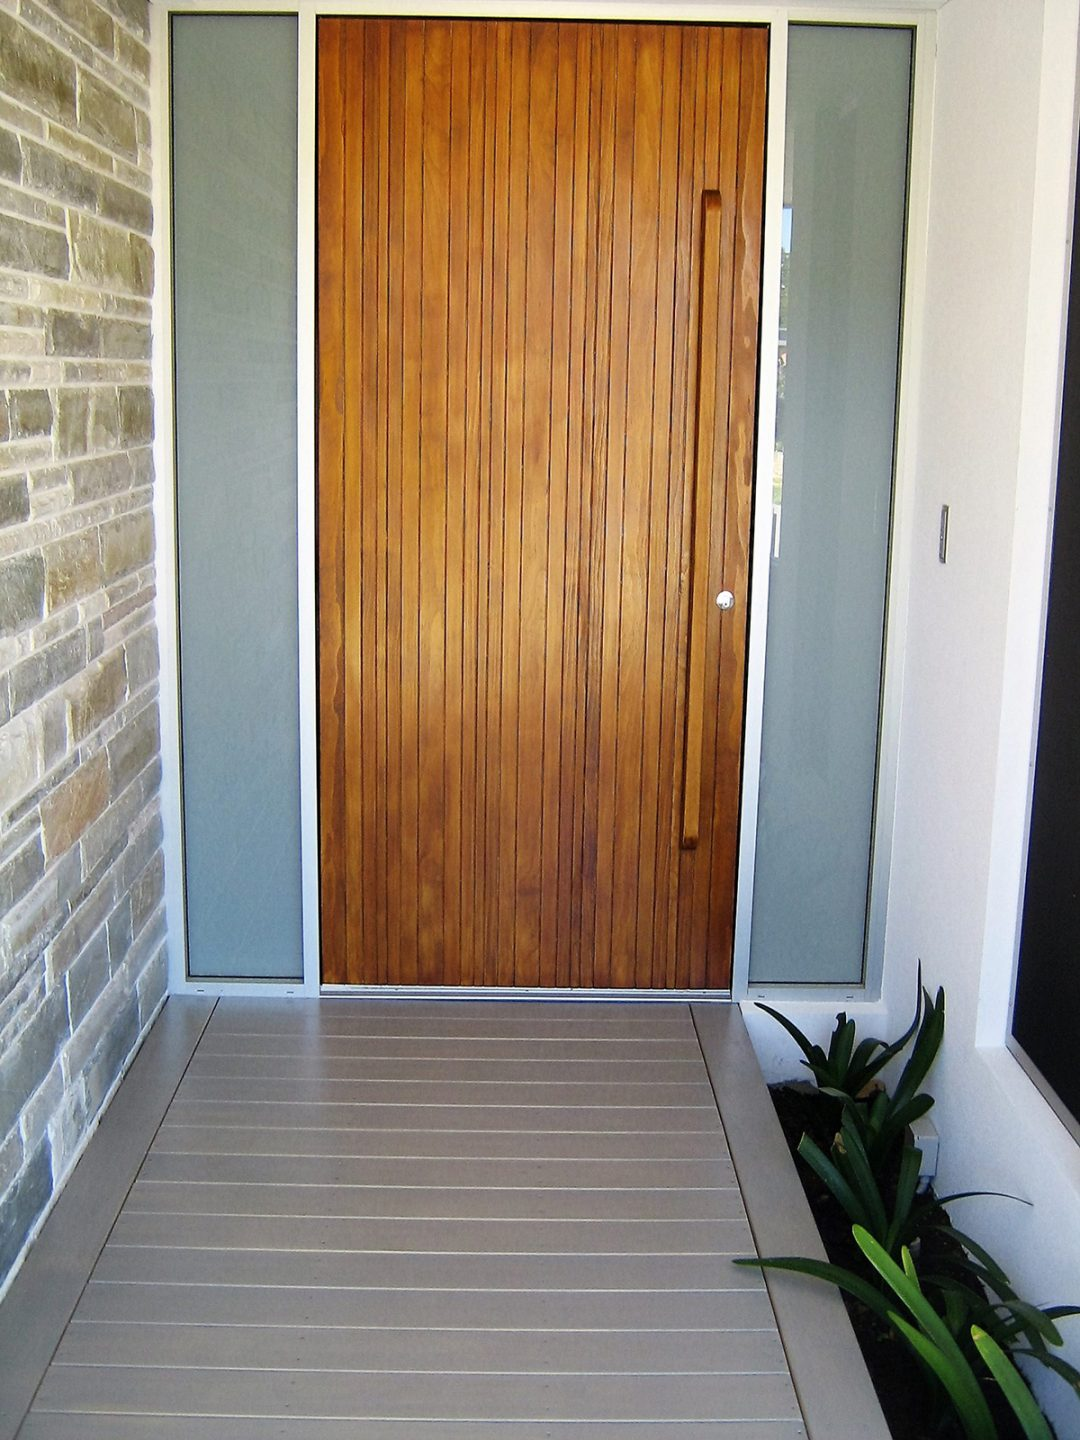 Accoya® chosen for decking and doors in Cottesloe, Australia